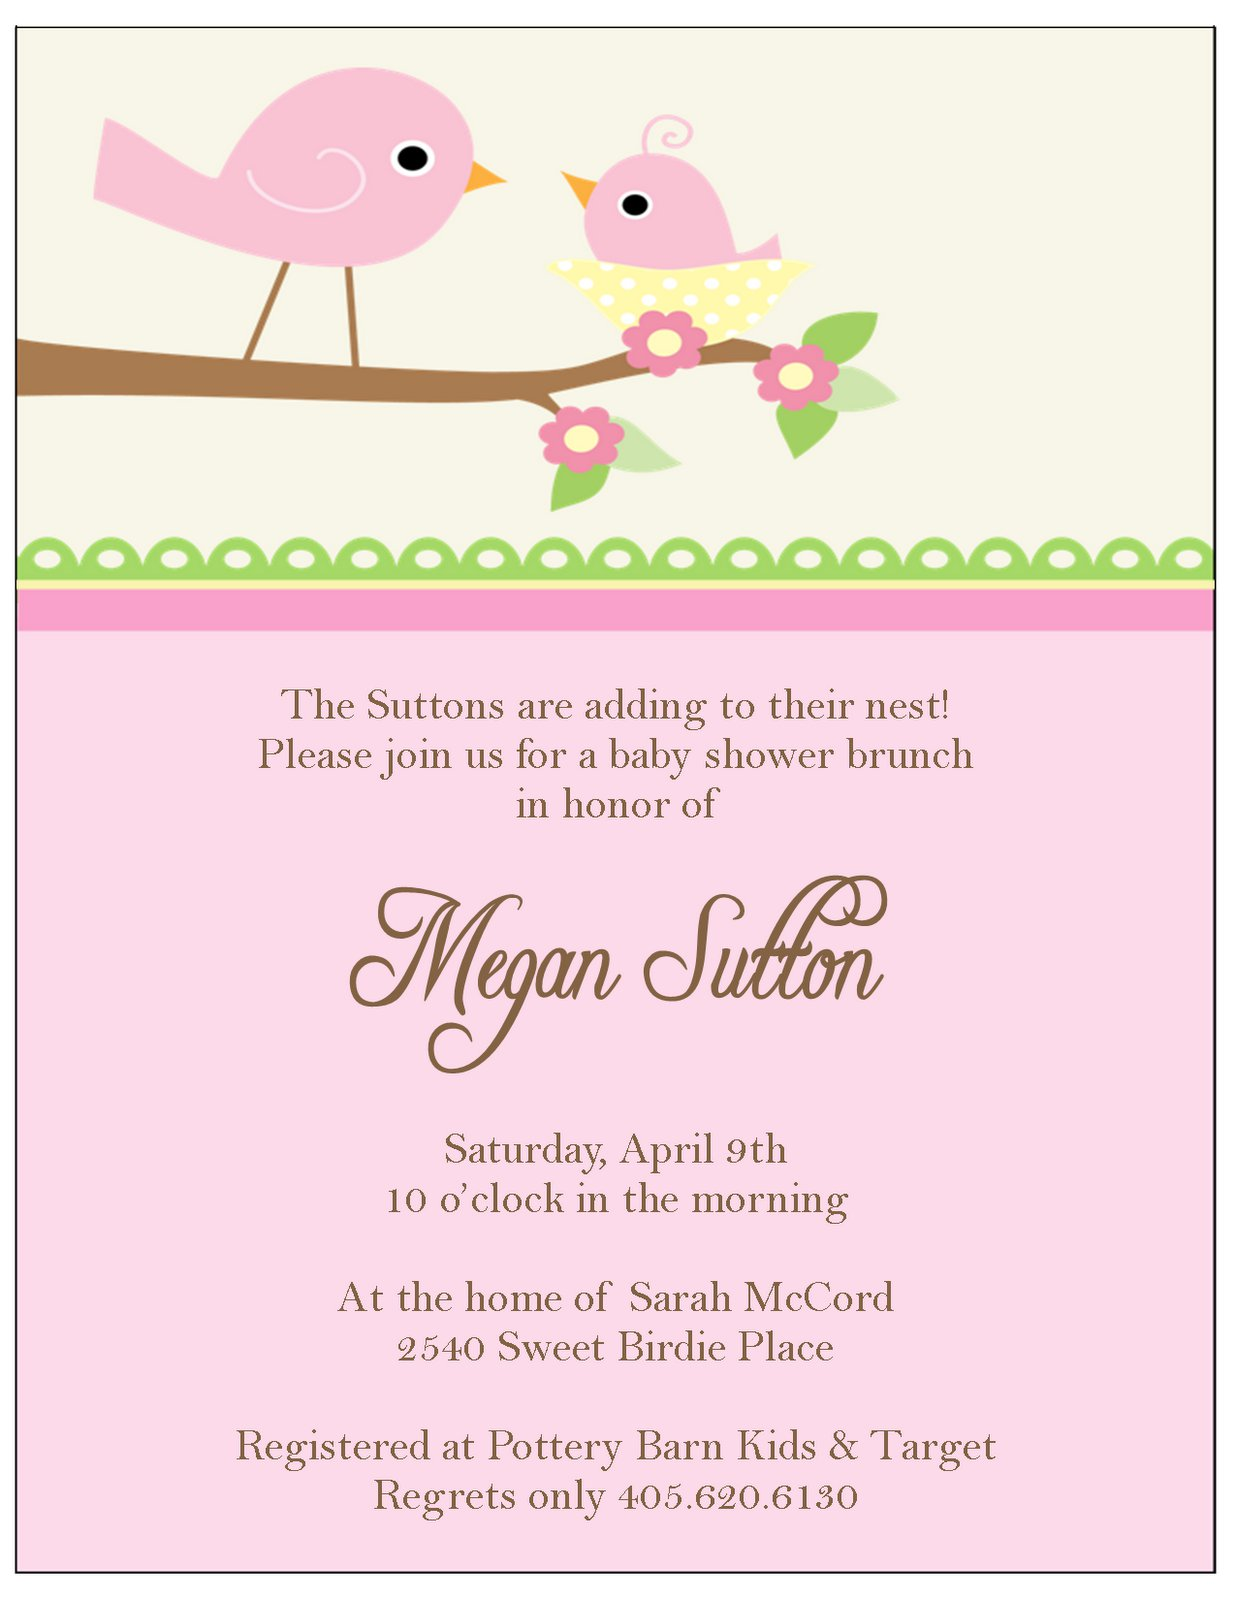 Full Size of Baby Shower:delightful Baby Shower Invitation Wording Picture Designs Best Baby Shower Gifts 2018 Baby Shower Hostess Gifts Throwing A Baby Shower Unique Baby Shower Favors Baby Shower Halls Baby Shower Locations